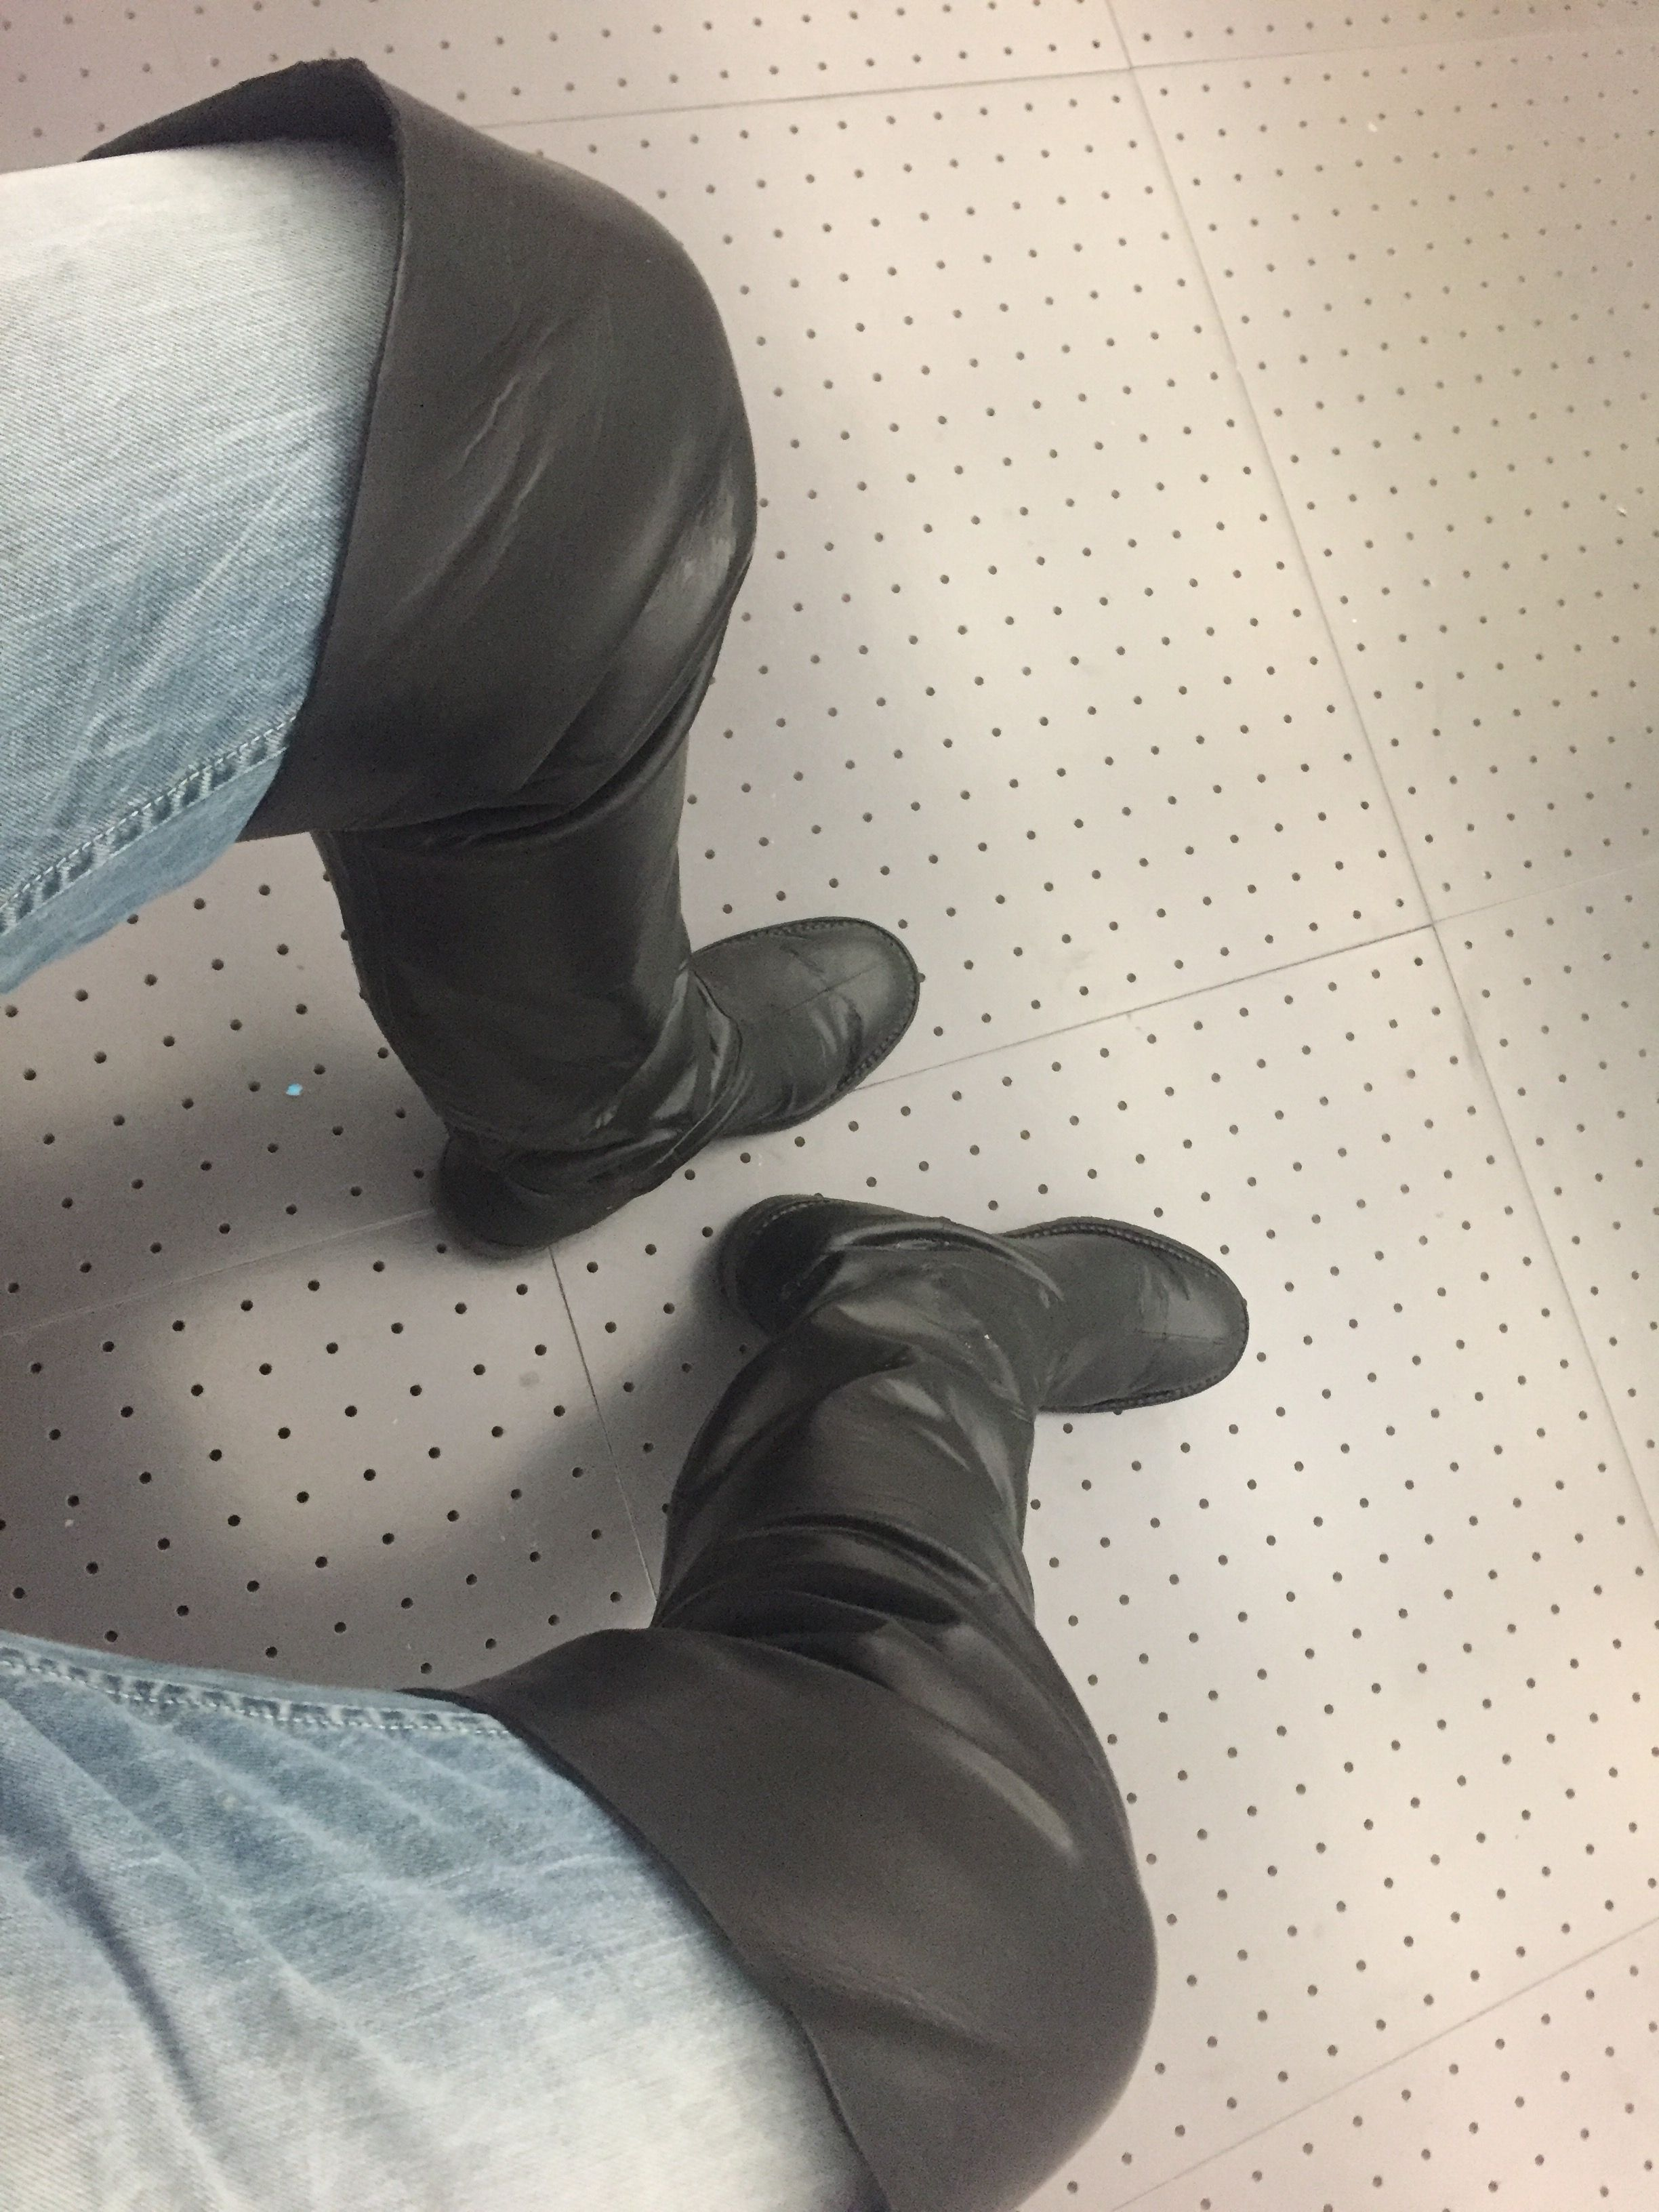 thighboots, jean gaborit, men in boots, cuissardes hommes